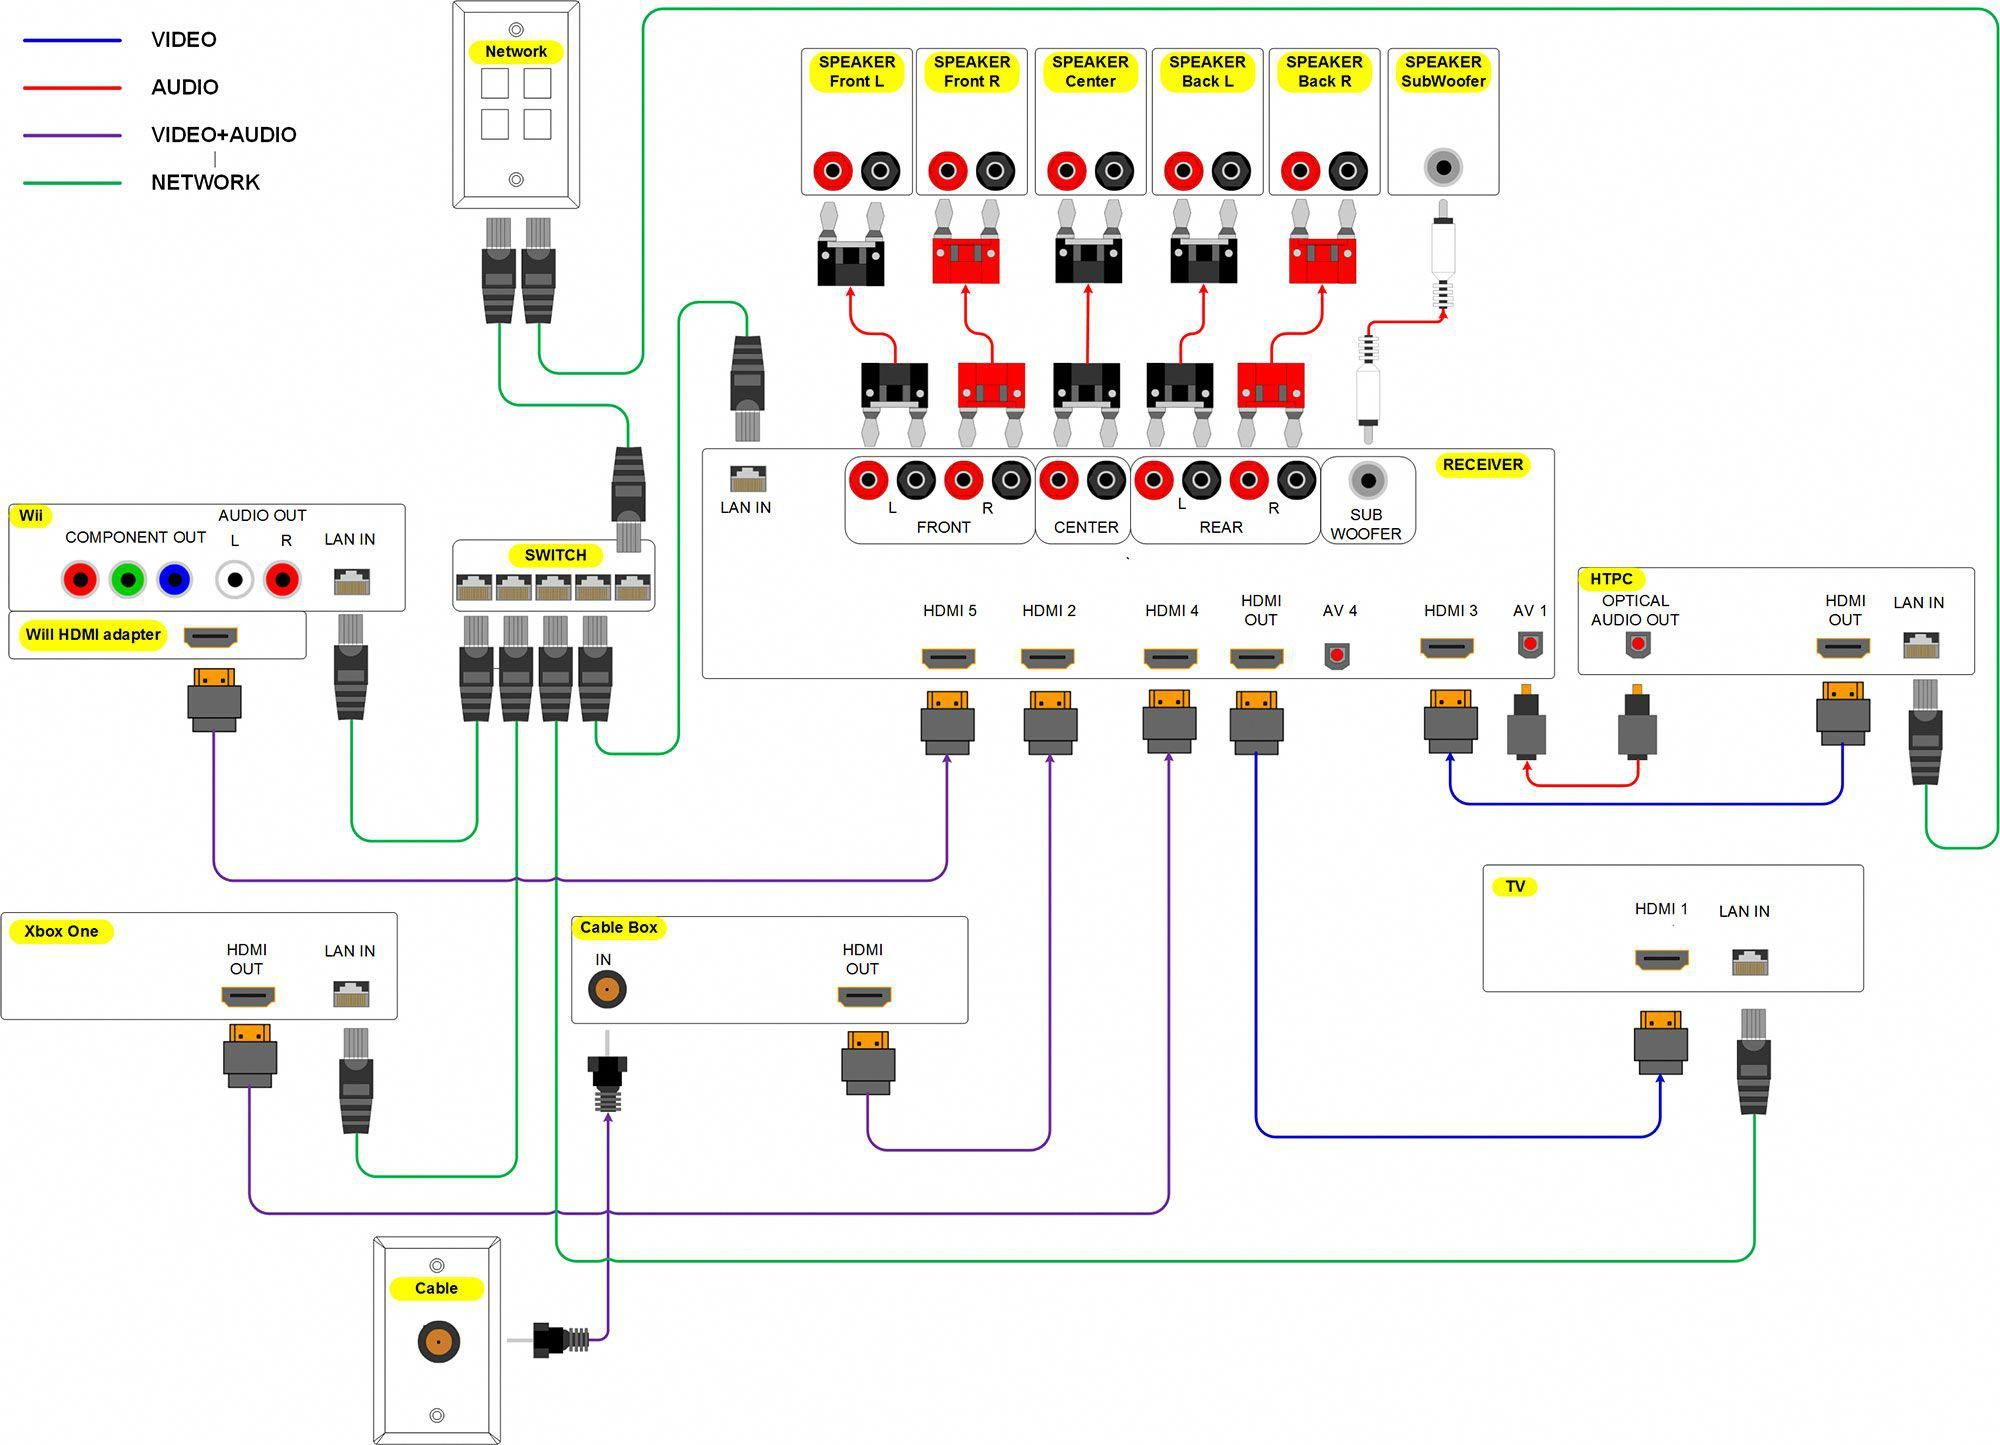 Home Theater Wiring Diagram Click It To See The Big 2000 Pixel Wide Homeautomationtheater Home Theater Wiring Home Electrical Wiring Subwoofer Wiring